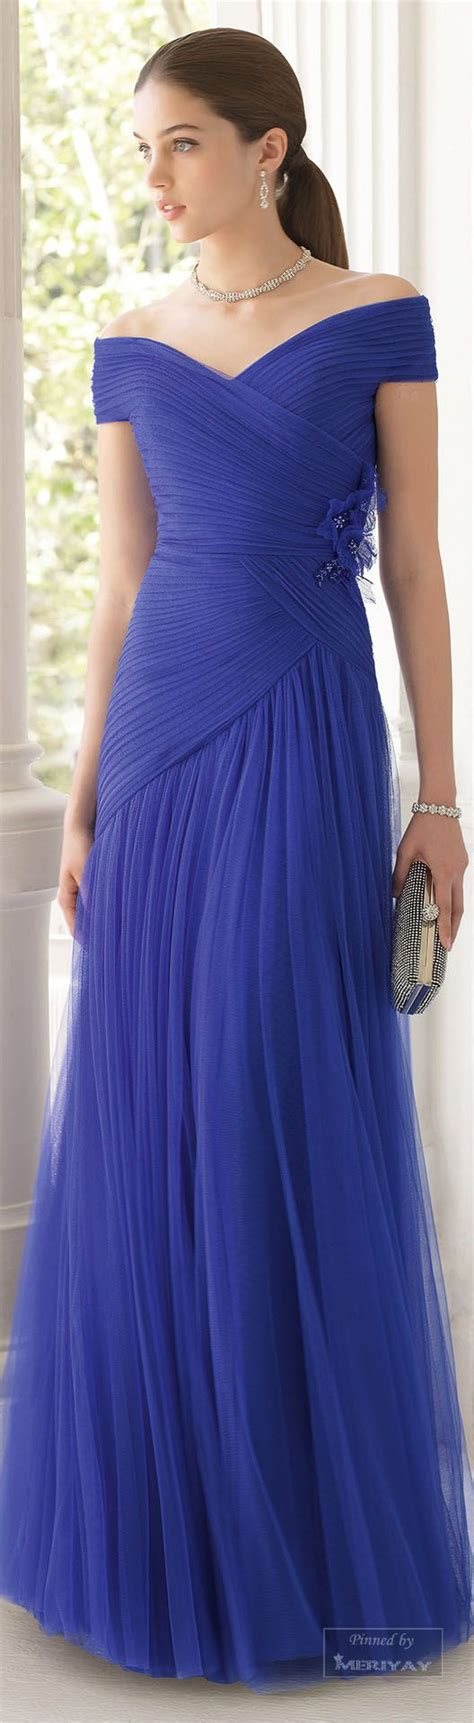 2015 hair pleat aire barcelona off the shoulder violet pleated chiffon